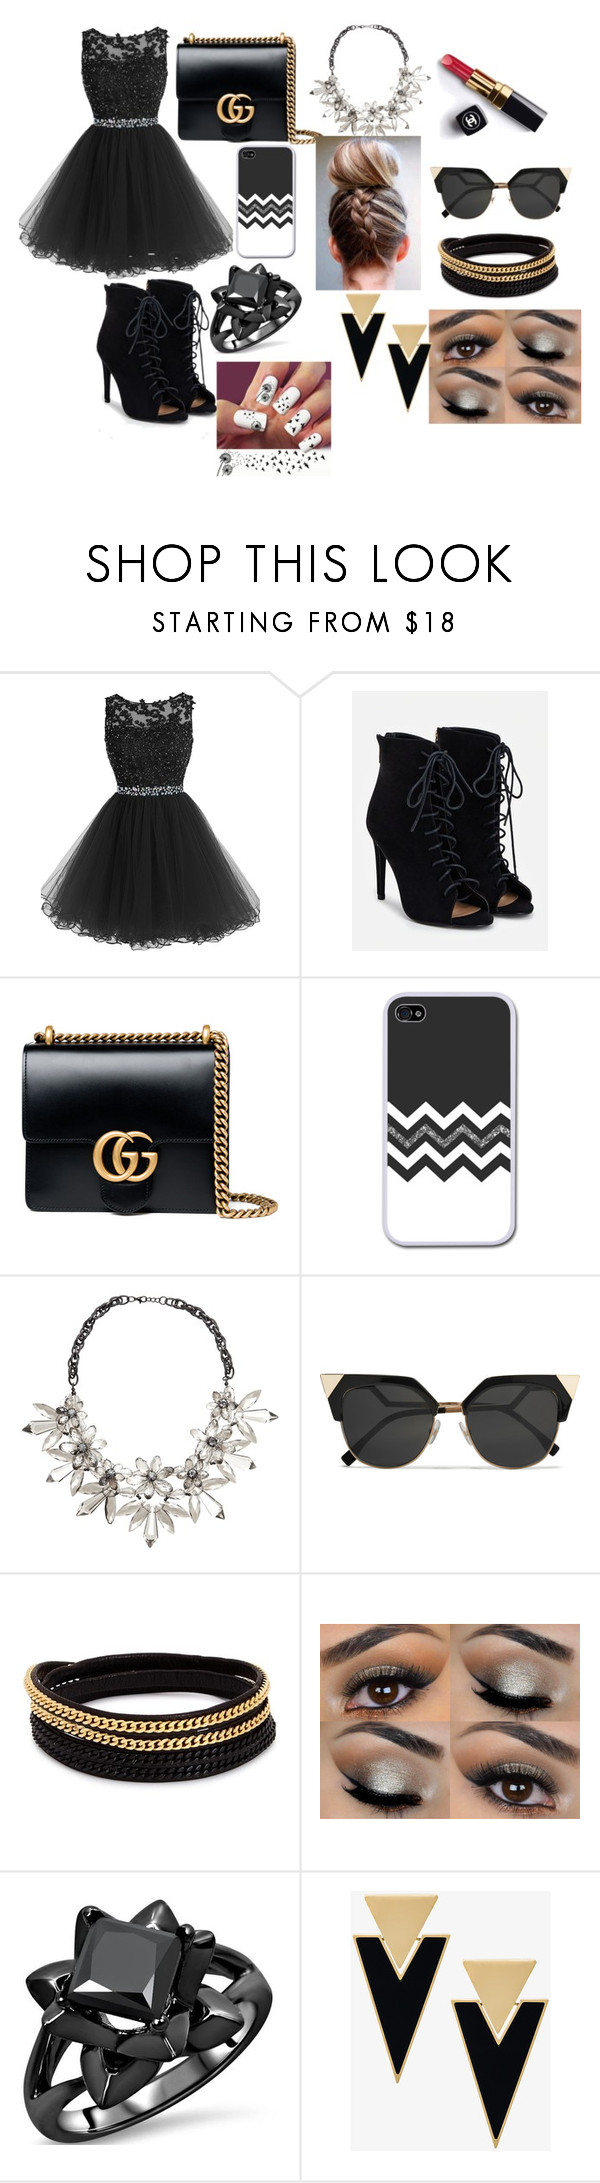 """Untitled #91"" by bosniamode ❤ liked on Polyvore featuring JustFab, Gucci, John Lewis, Chanel, Fendi, Vita Fede and Yves Saint Laurent"